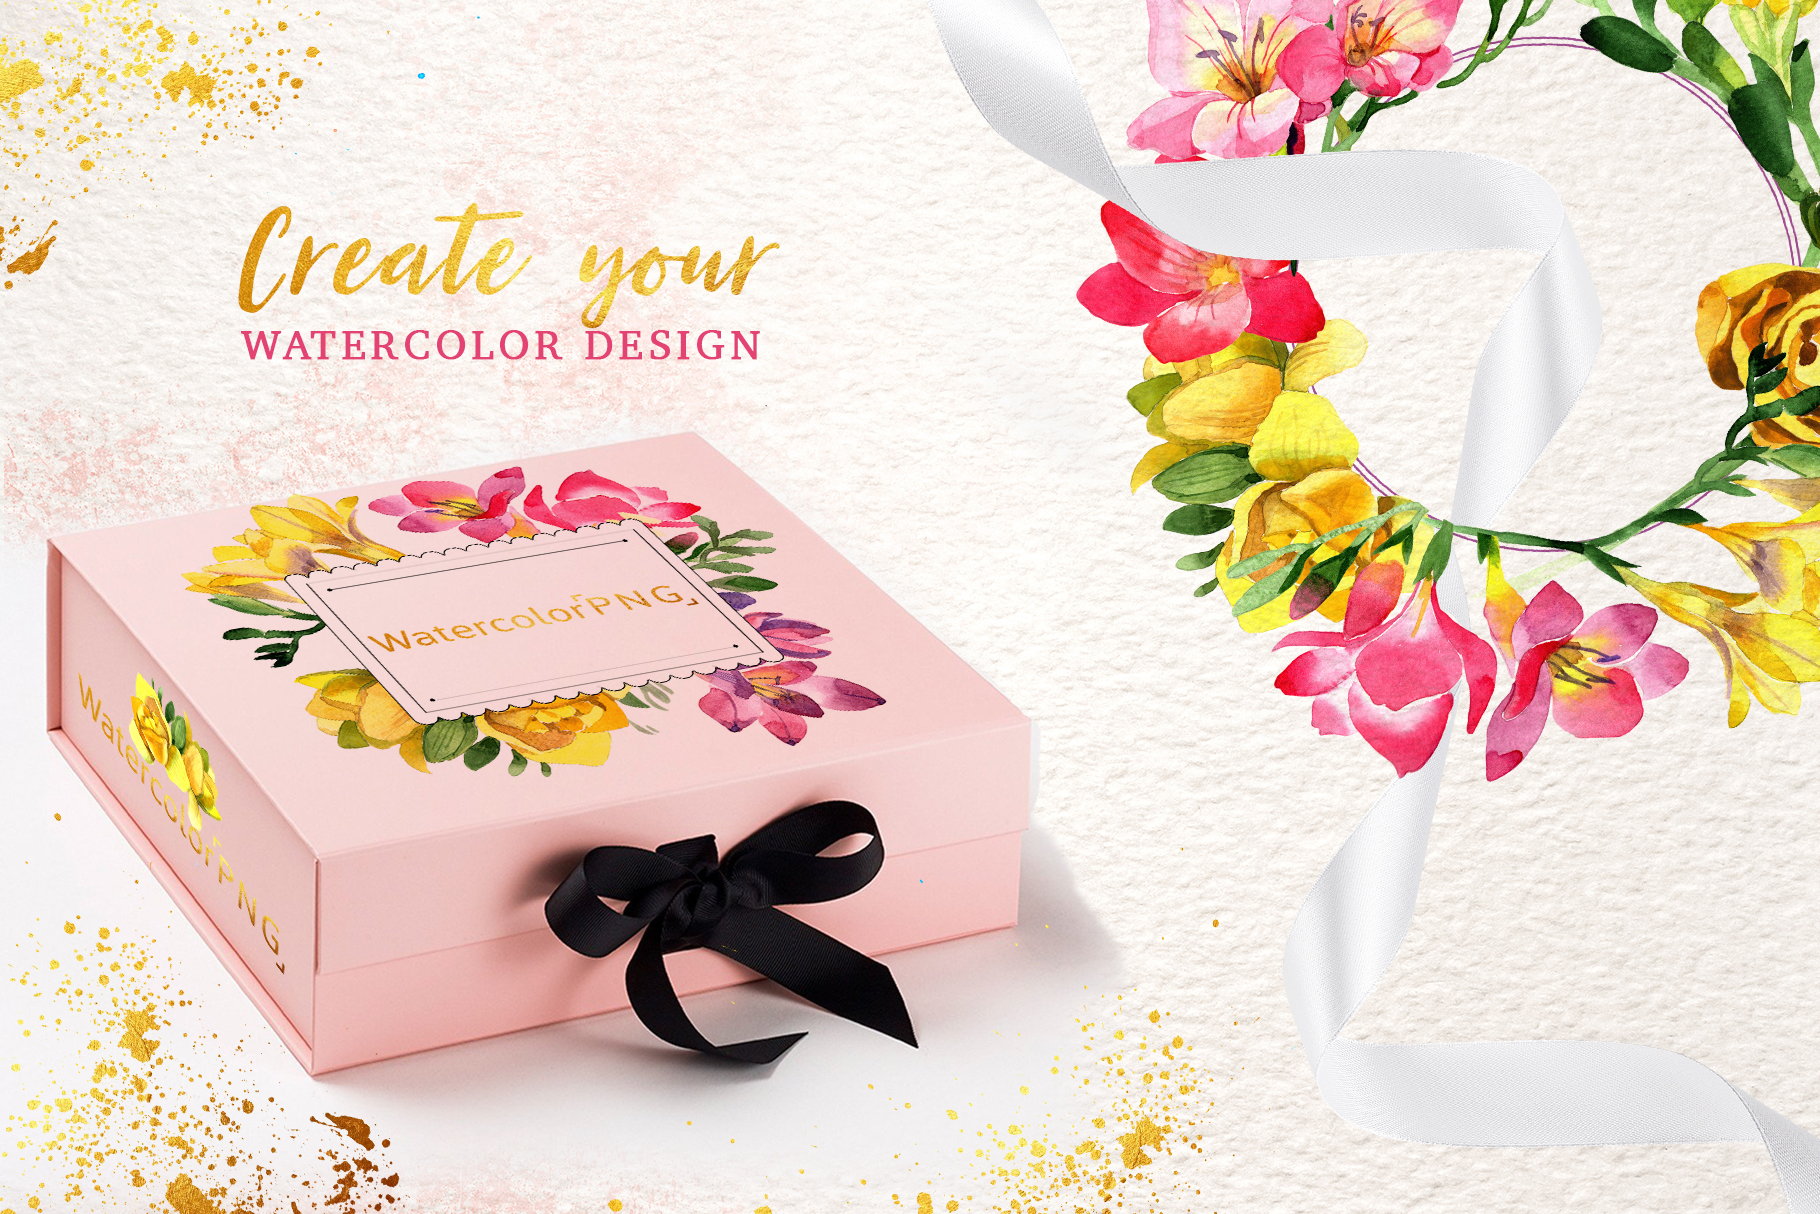 Floral Design collection watercolor png example image 2